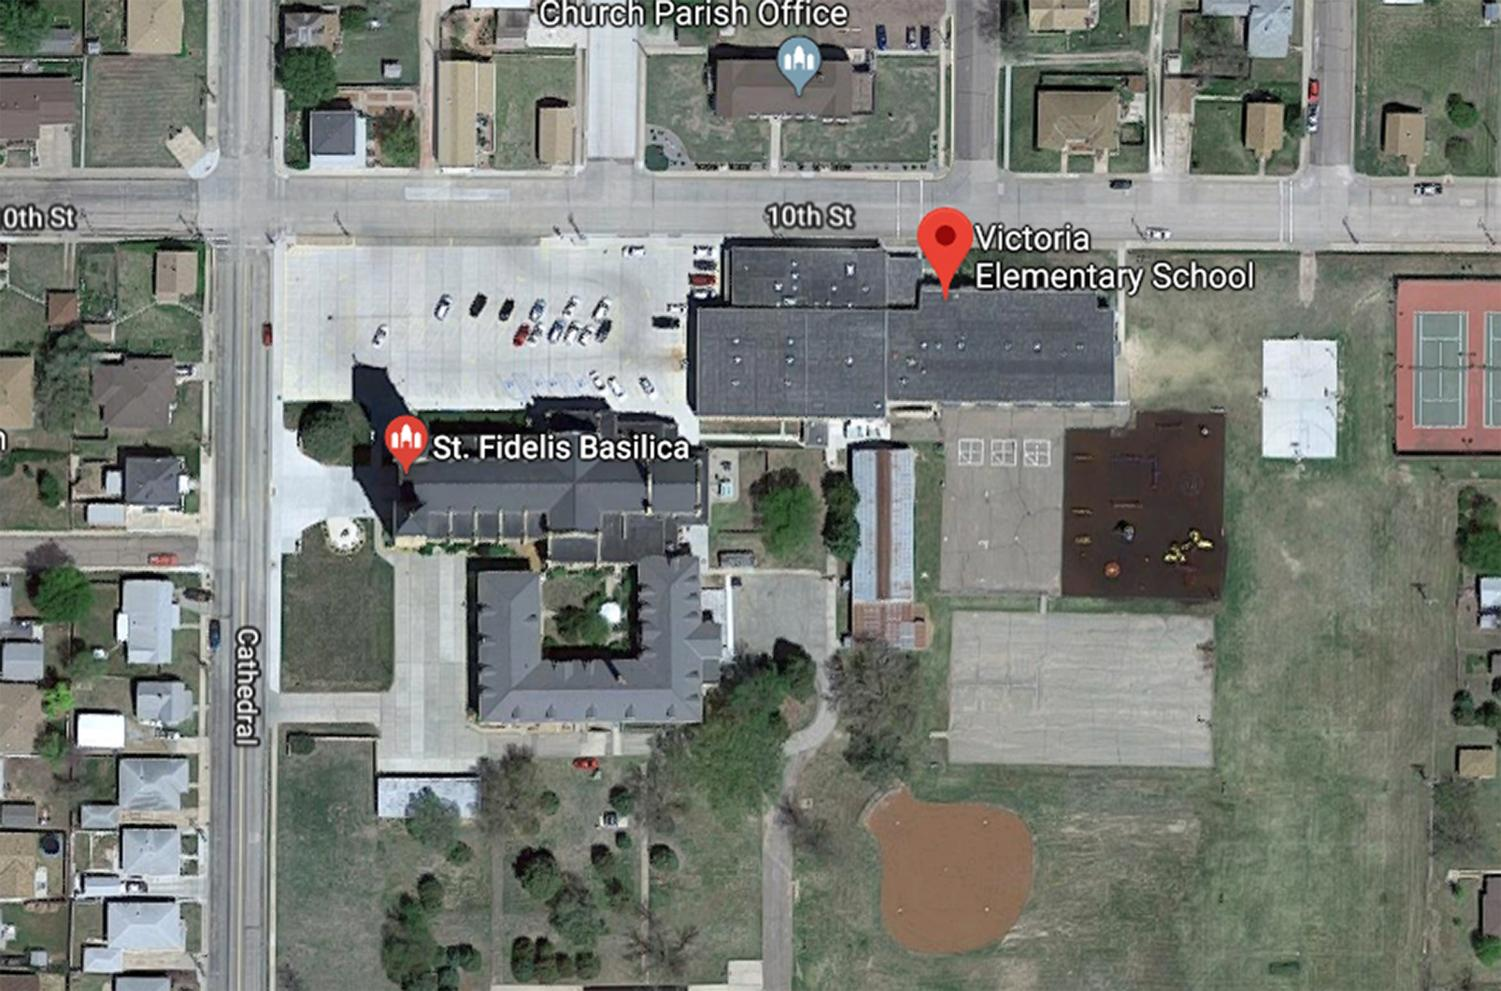 In close quarters, the friary at St. Fidelis Basilica shares a parking lot with Victoria Elementary School. This concerns many people due to the fact that ex-cardinal Theodore McCarrick, an alleged sex offender, now resides in the friary. photo courtesy of google maps.